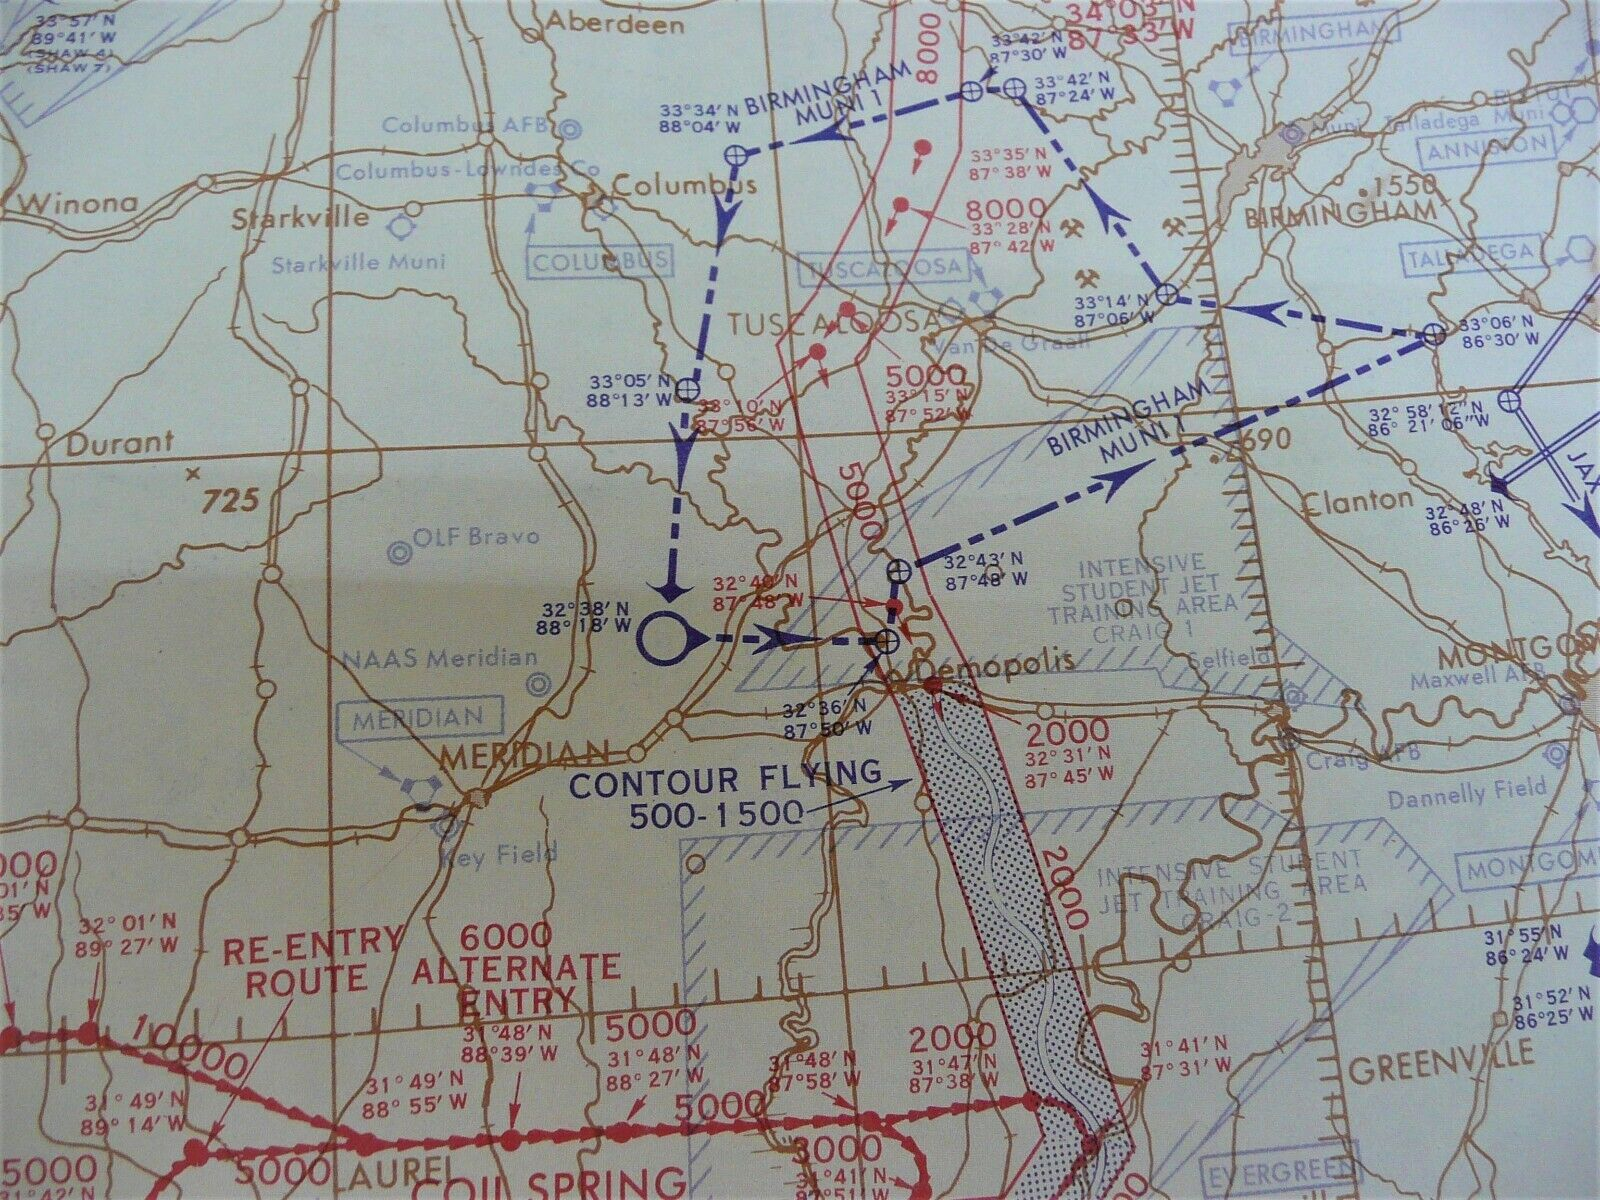 US Air Force/Navy Low Altitude High Speed 1963 Training Aeronautical Route Chart